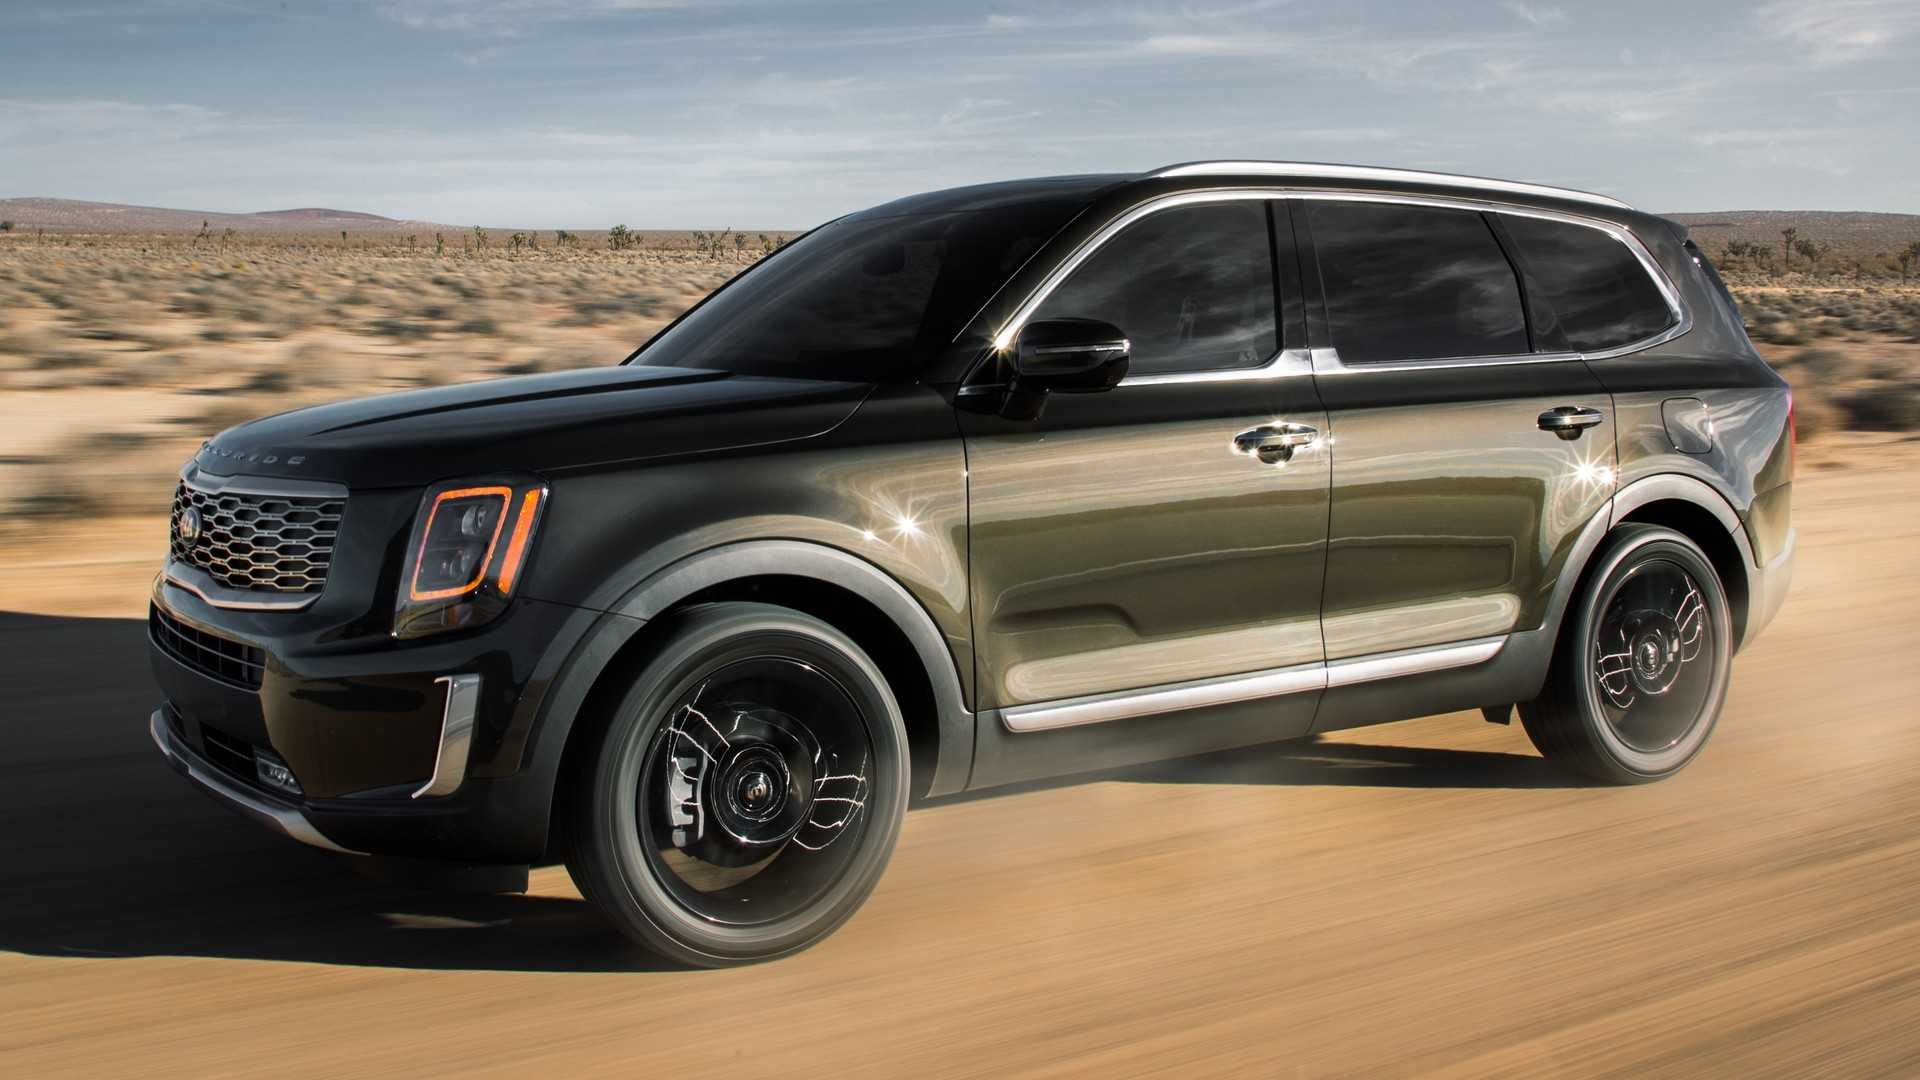 best fabric protector 2020 Most Expensive 2020 Kia Telluride Costs $50,775